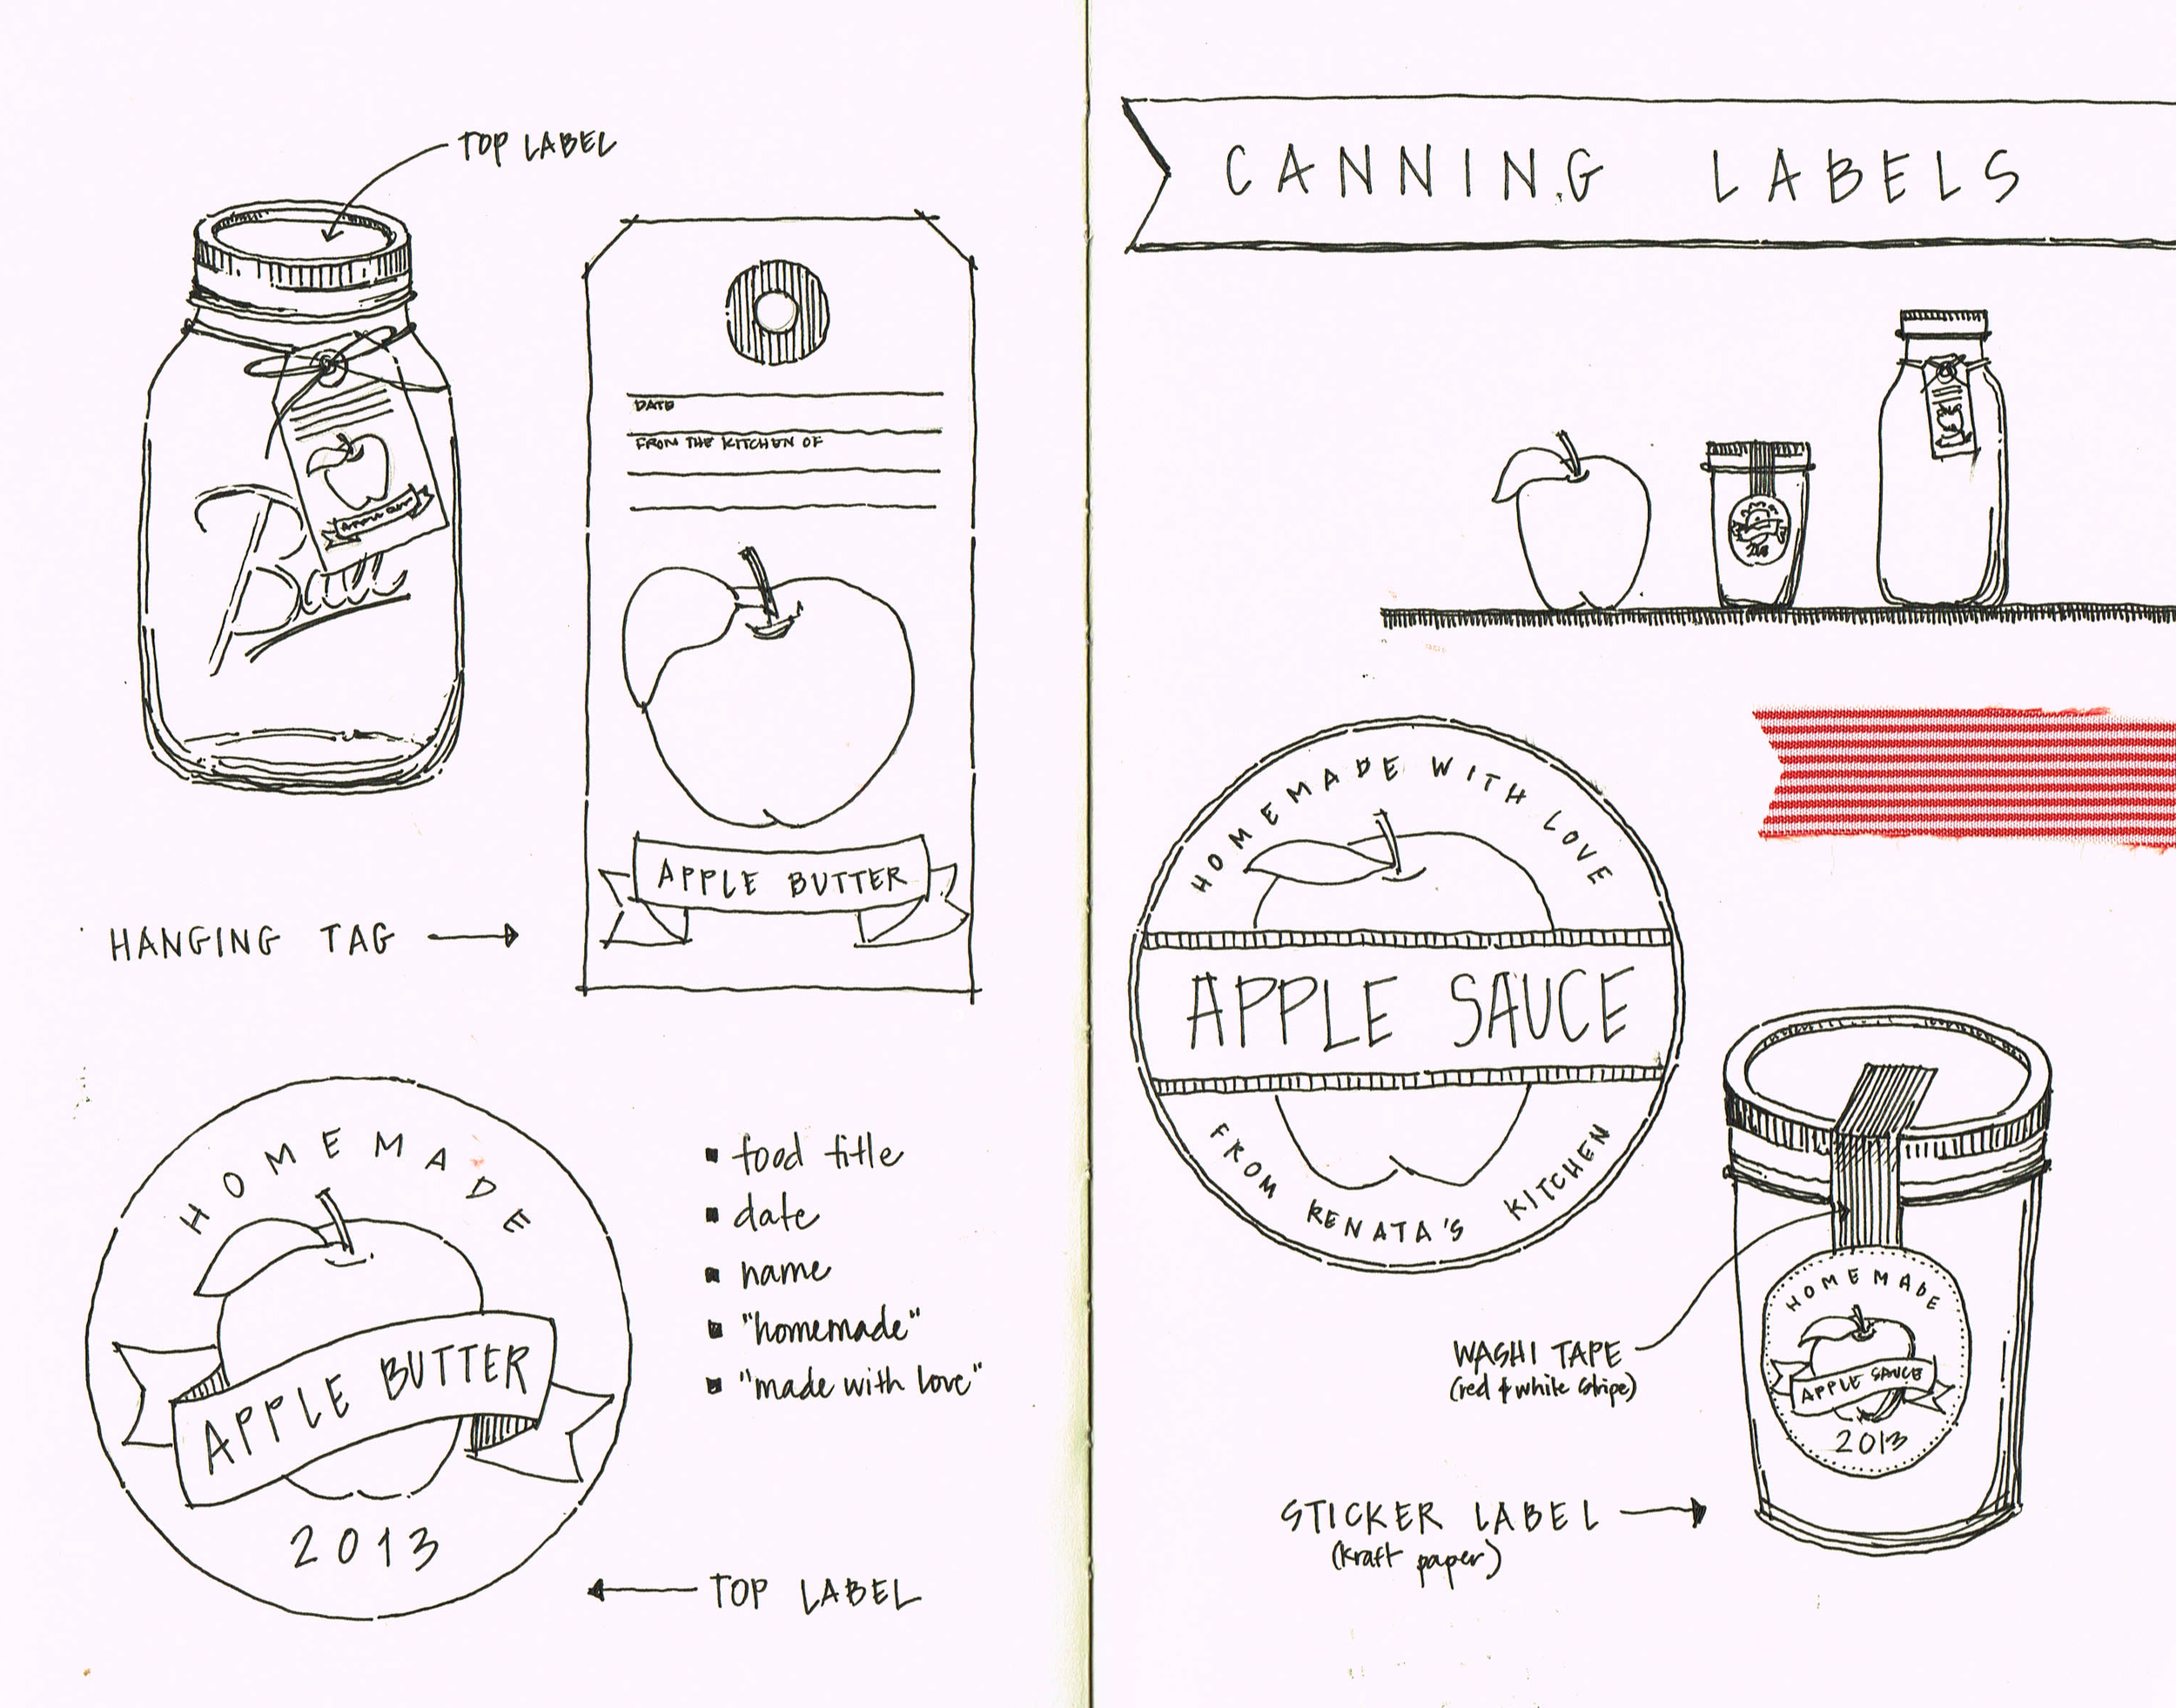 CanningLabels_Sketch.jpg